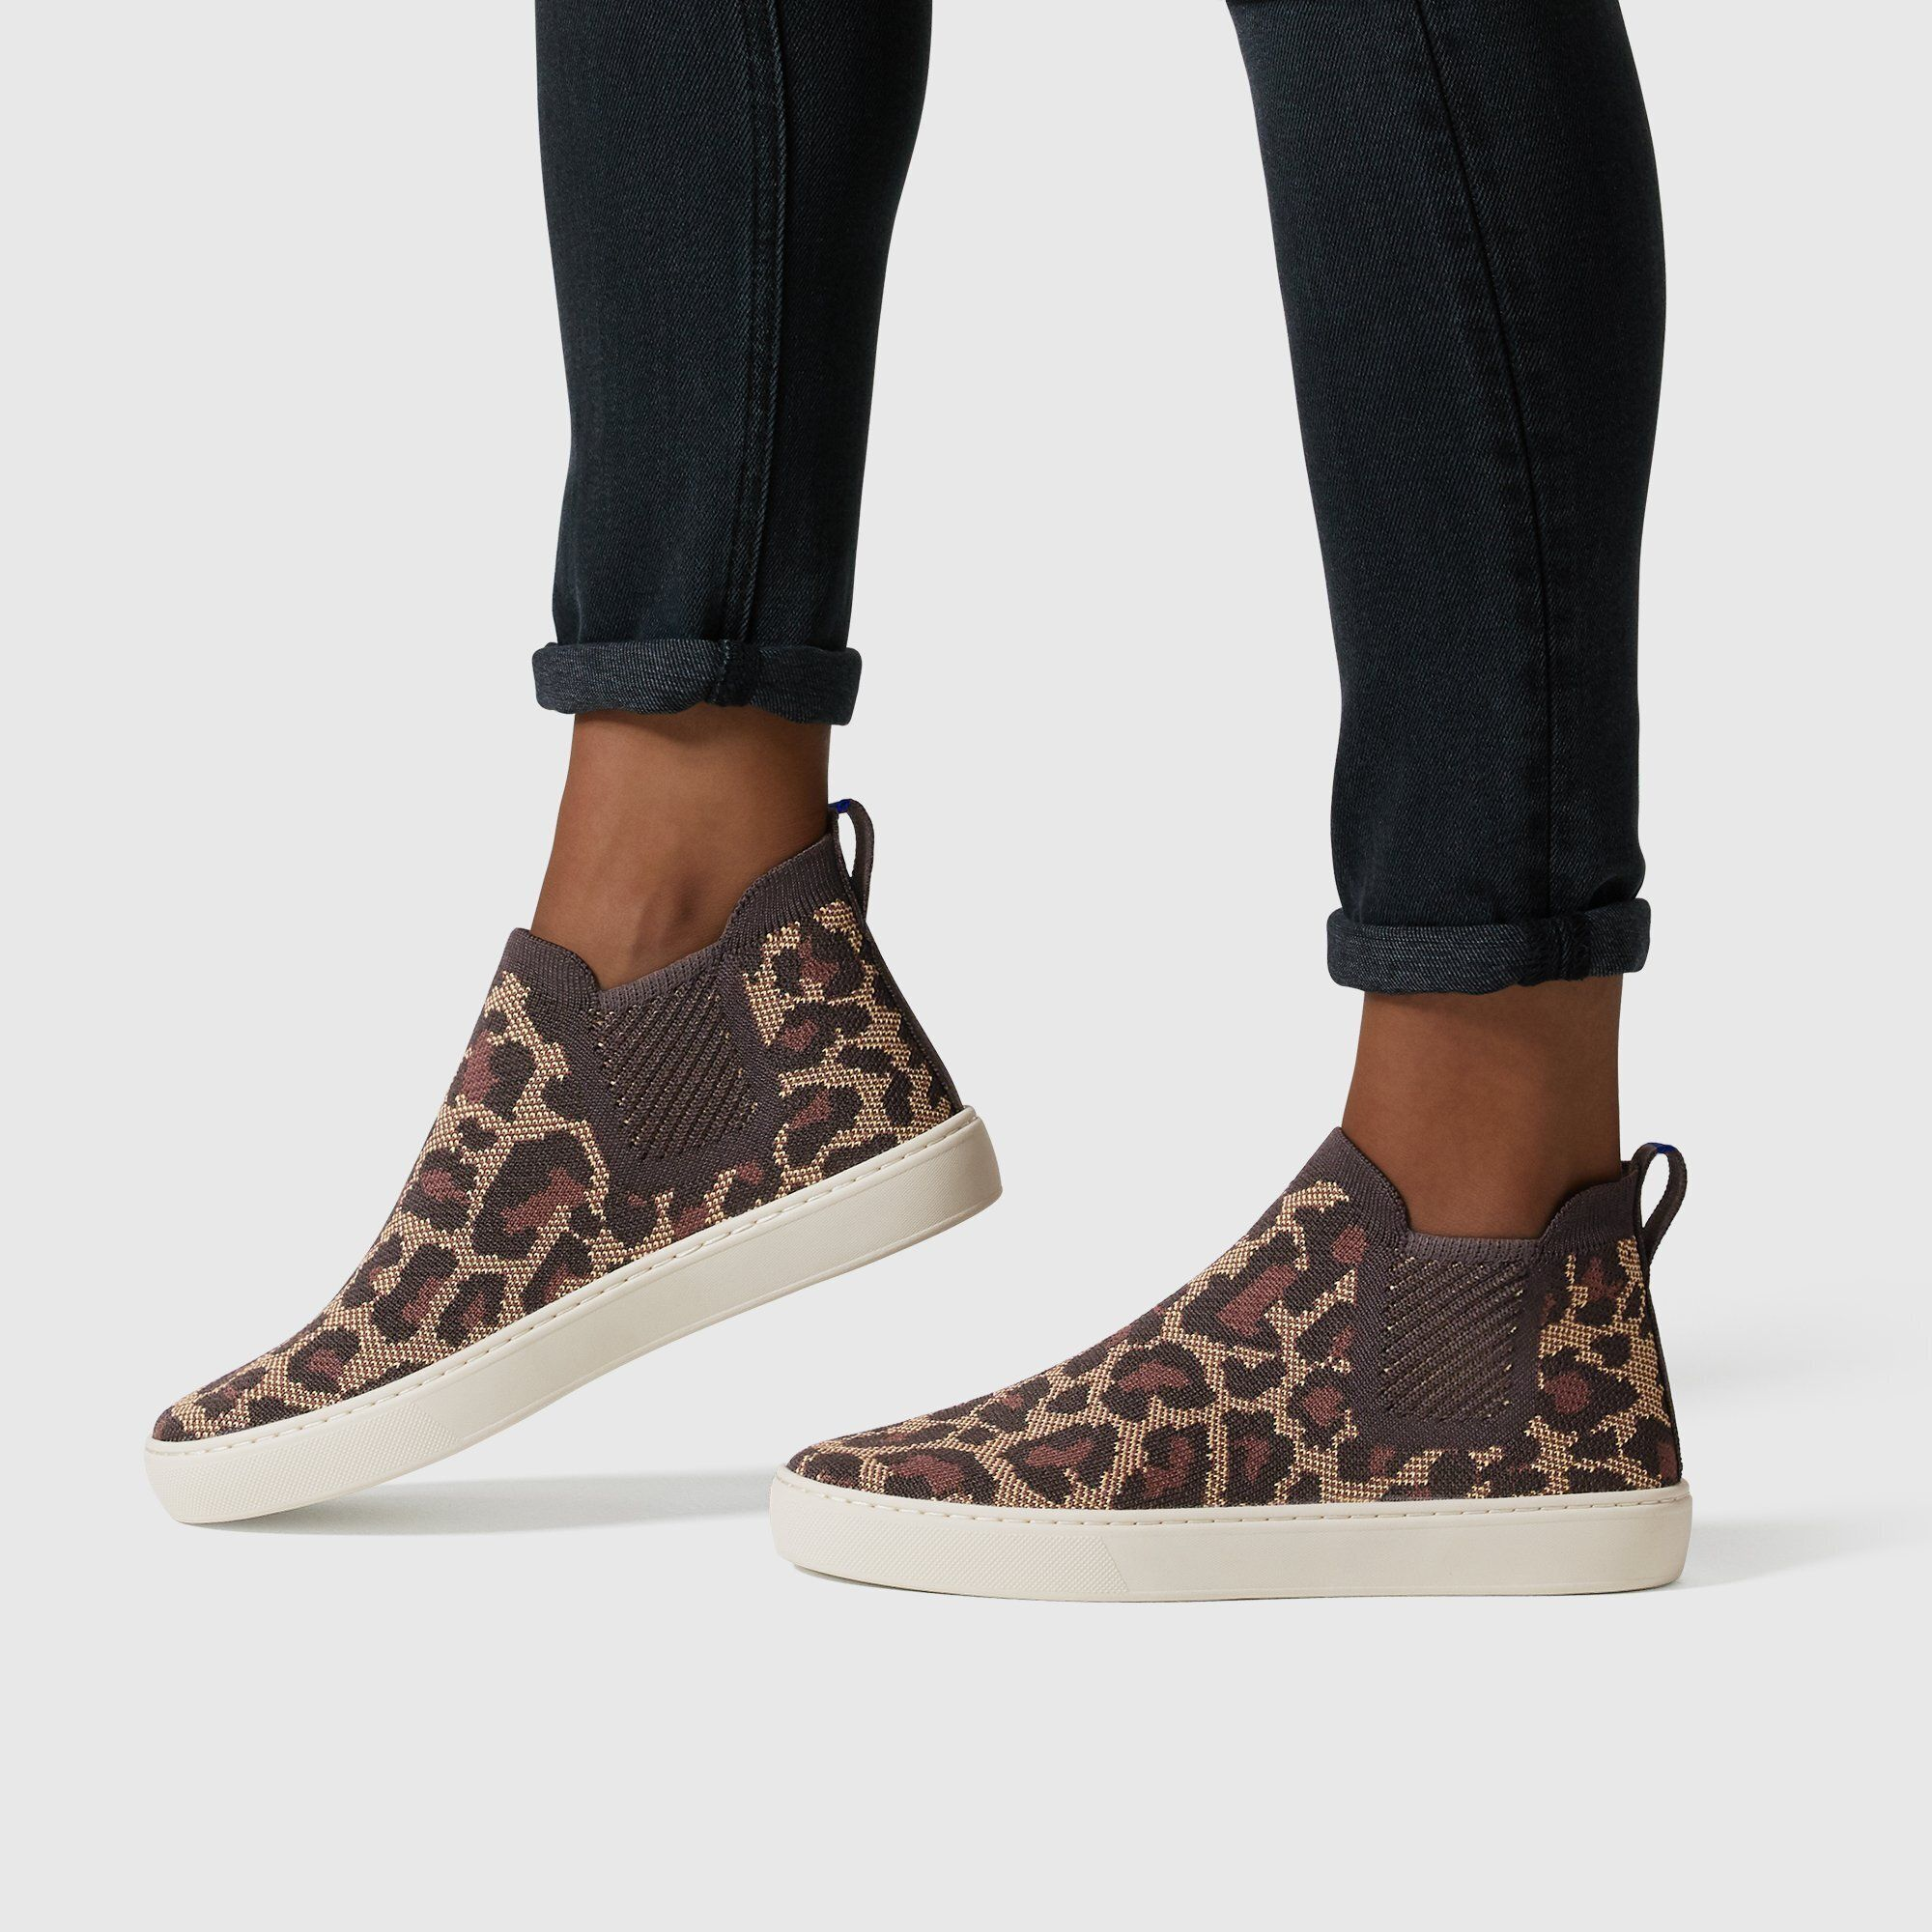 20 Stylish Travel Shoes That Are